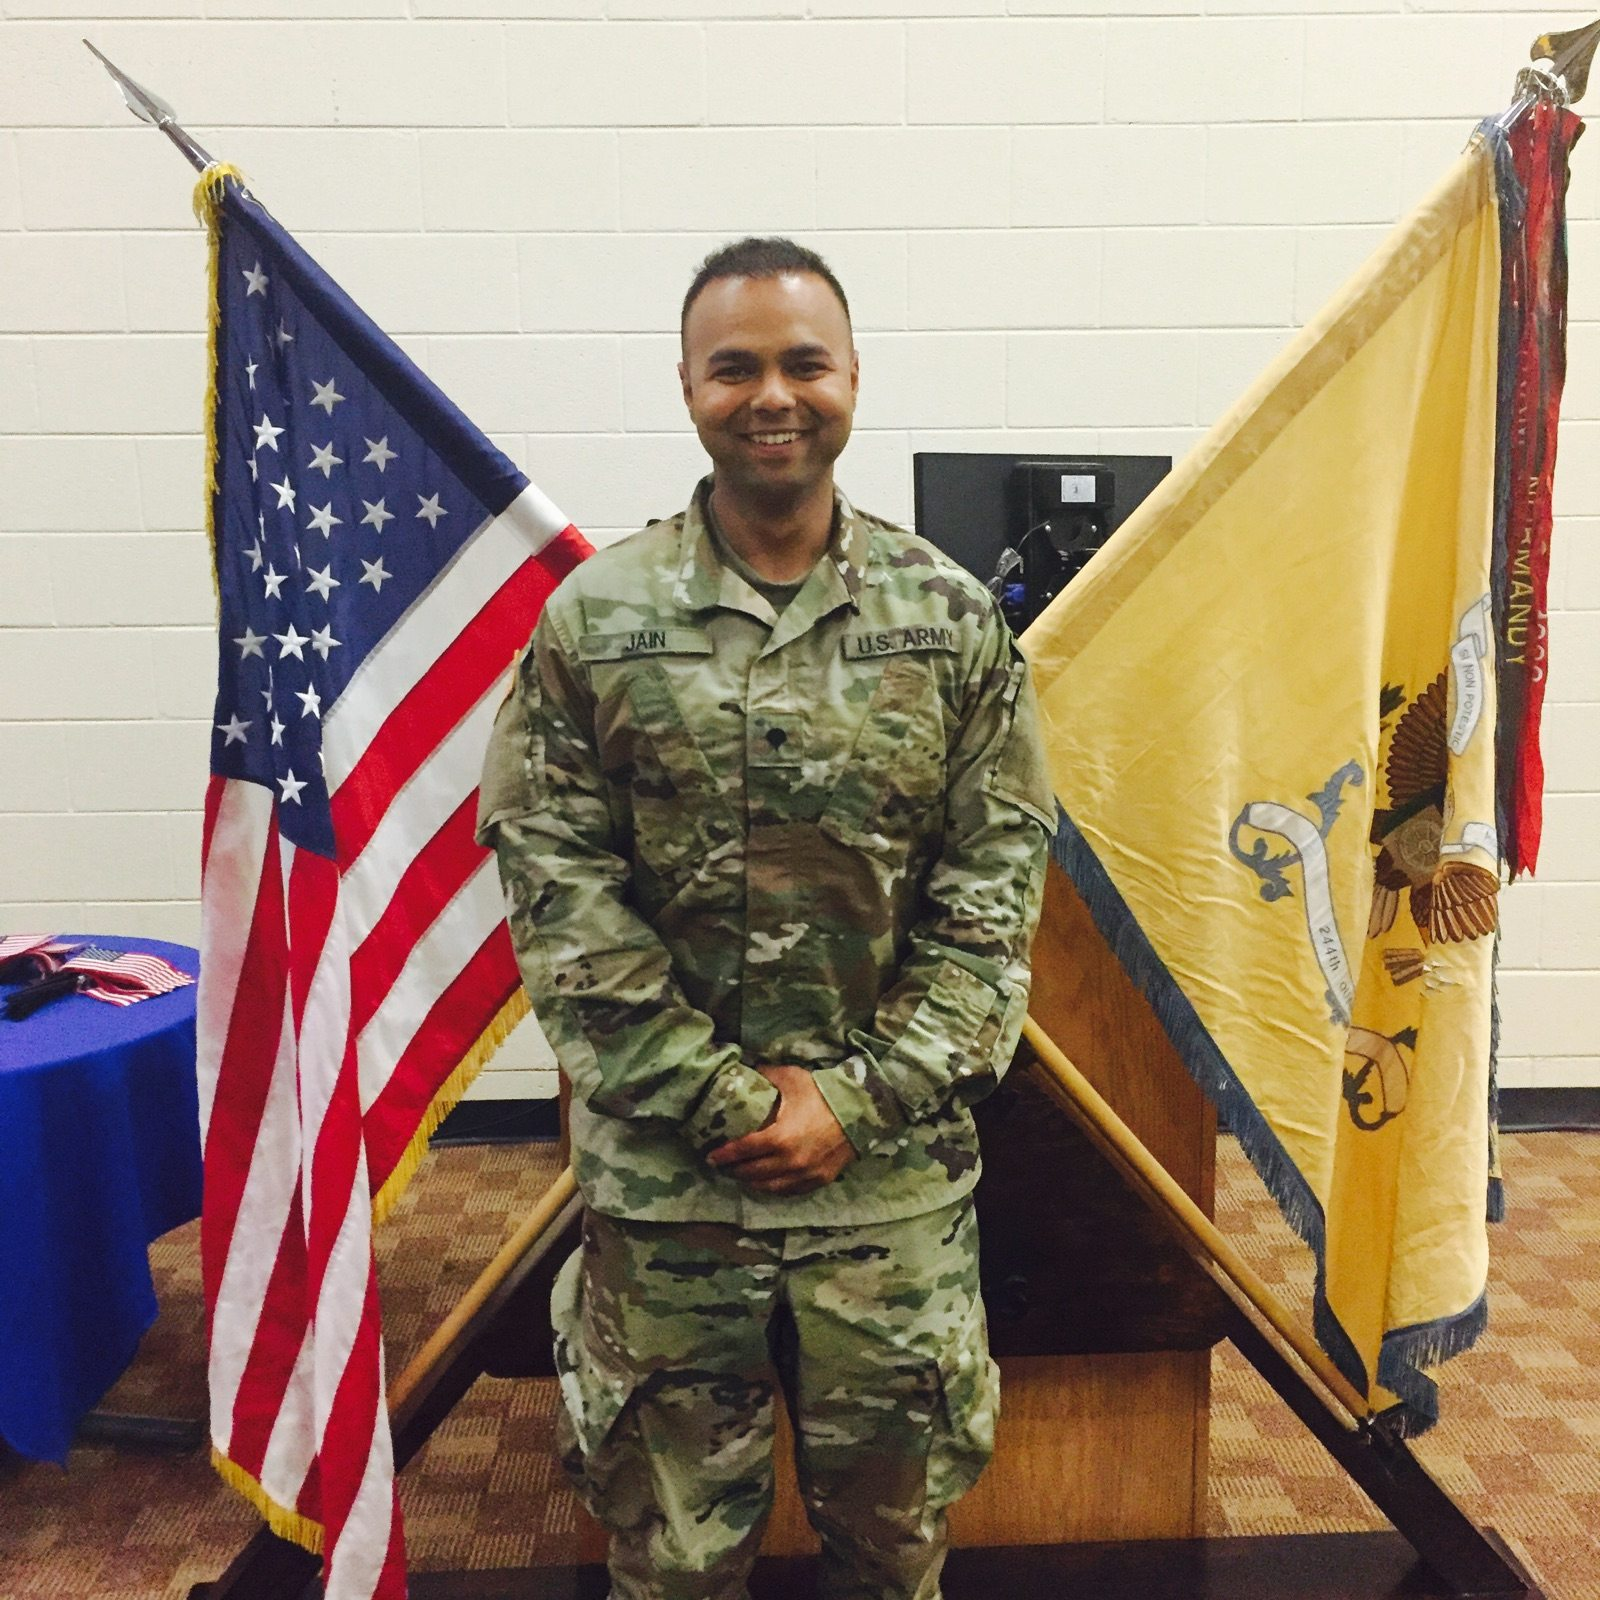 Becoming a US Citizen. Mukul Jain's personal story of struggle and dream chasing.